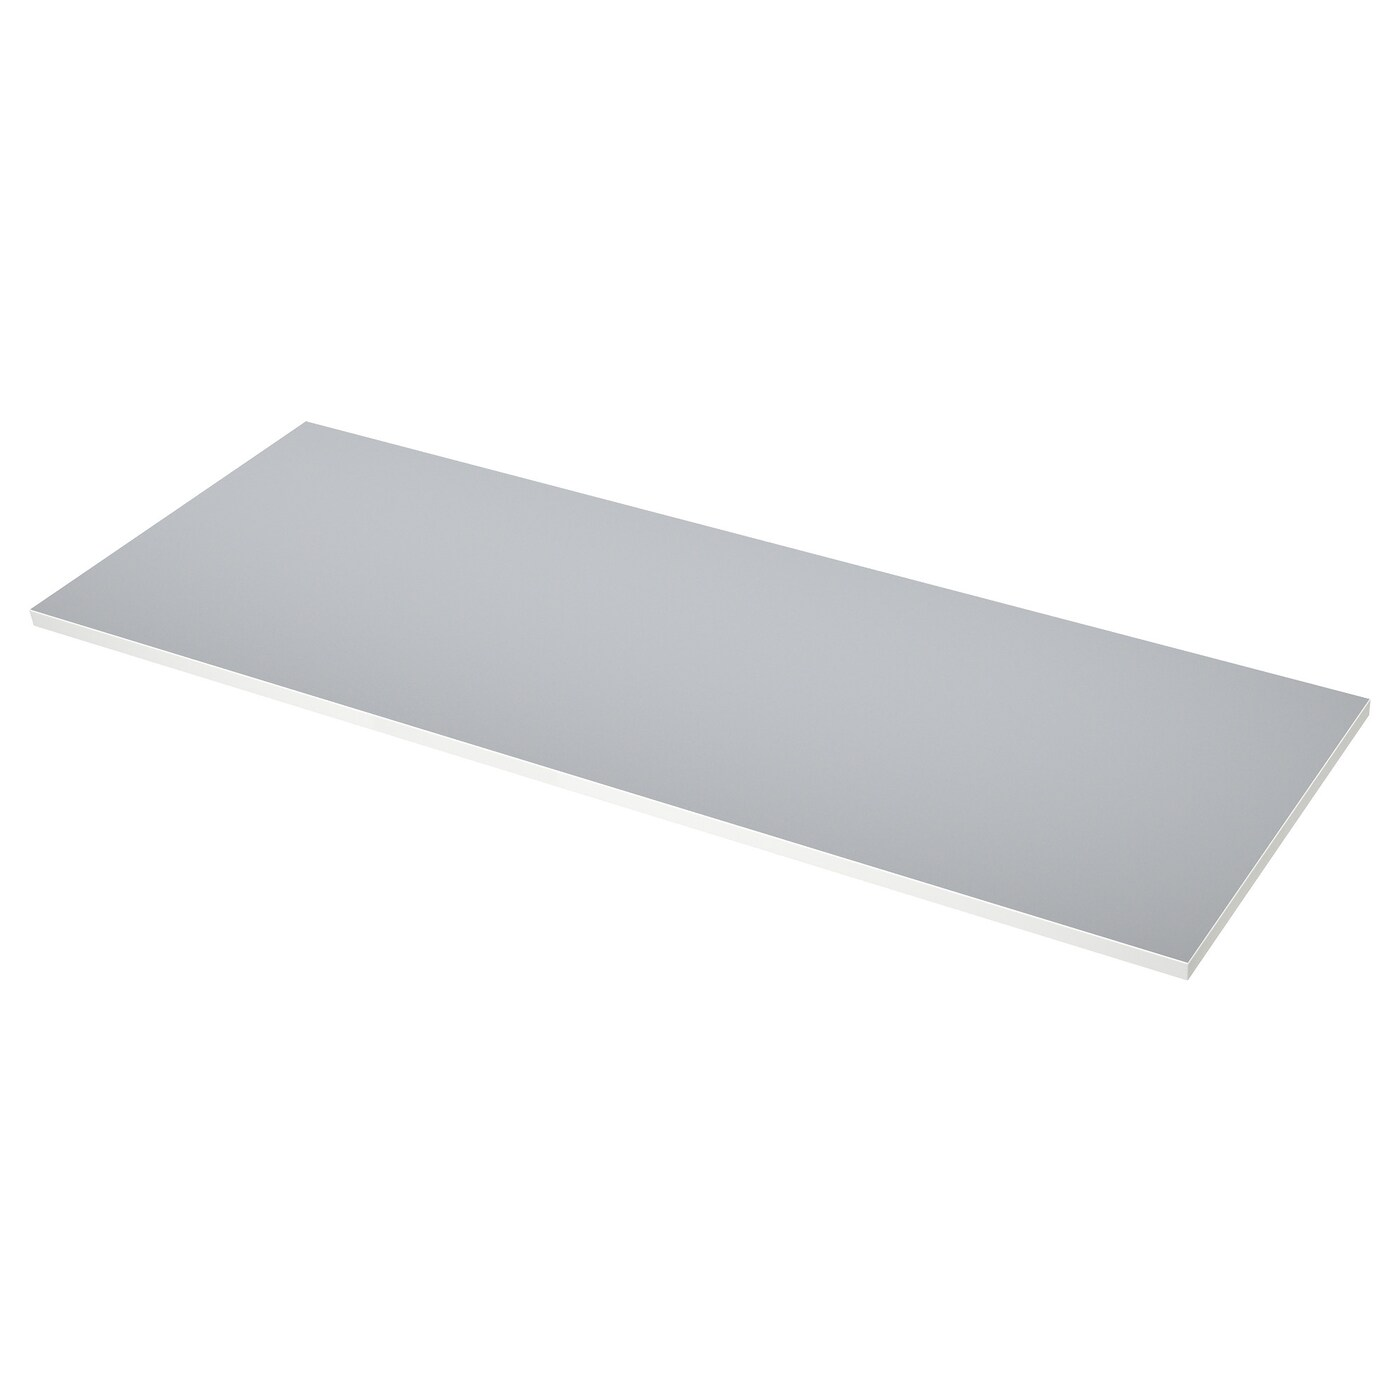 Ekbacken Worktop Double Sided Light Grey With White Edge Light Grey White Laminate White Ikea